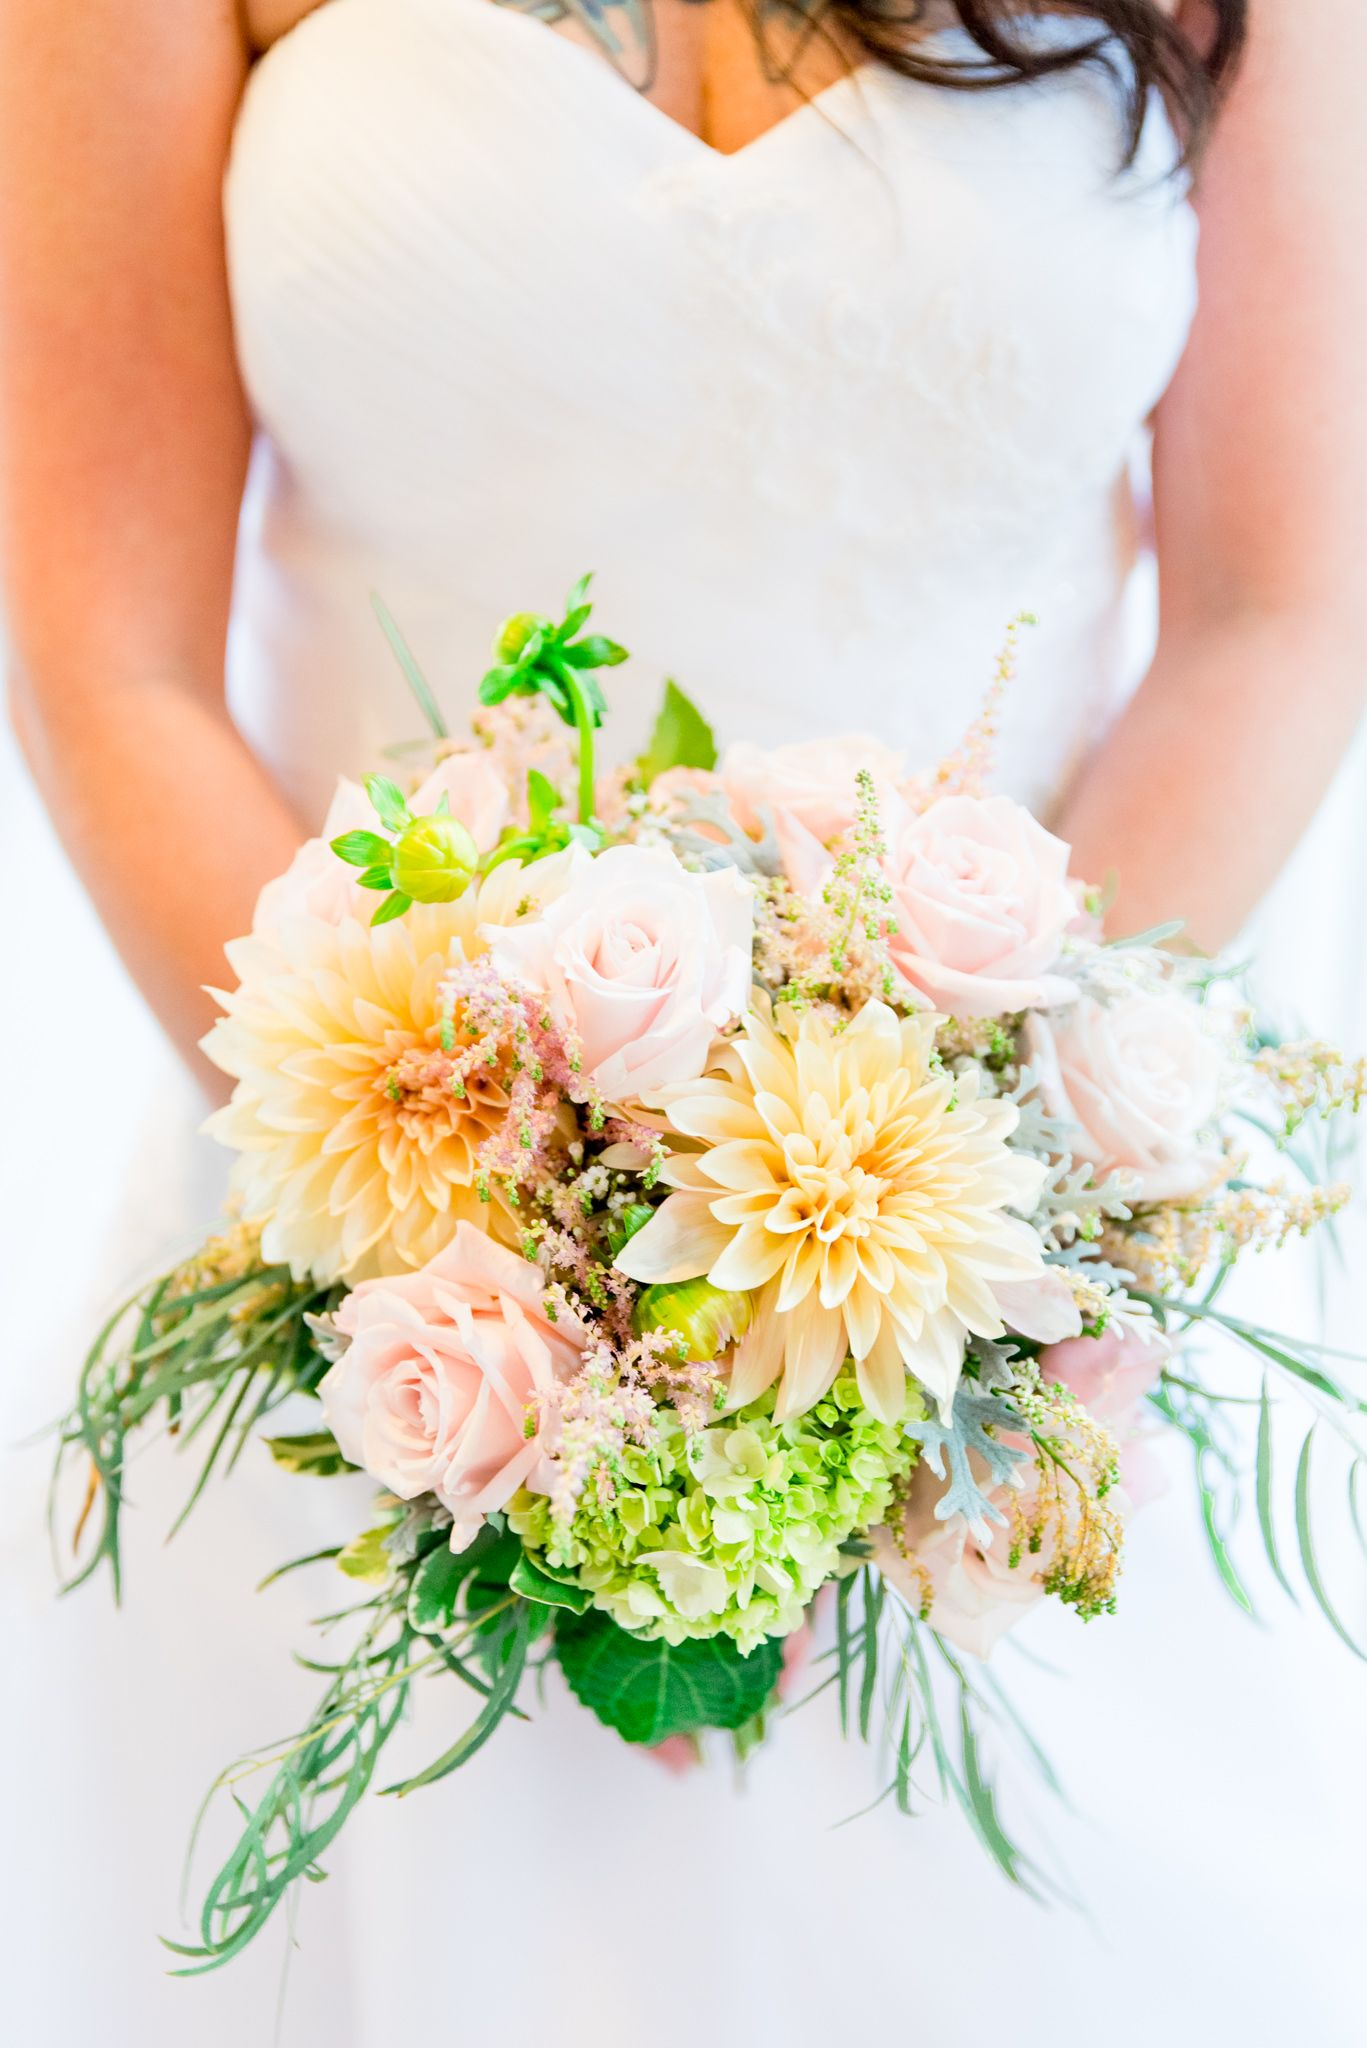 bride holding pastel yellow, pink, and neon green wedding bouquet for a fall or spring wedding